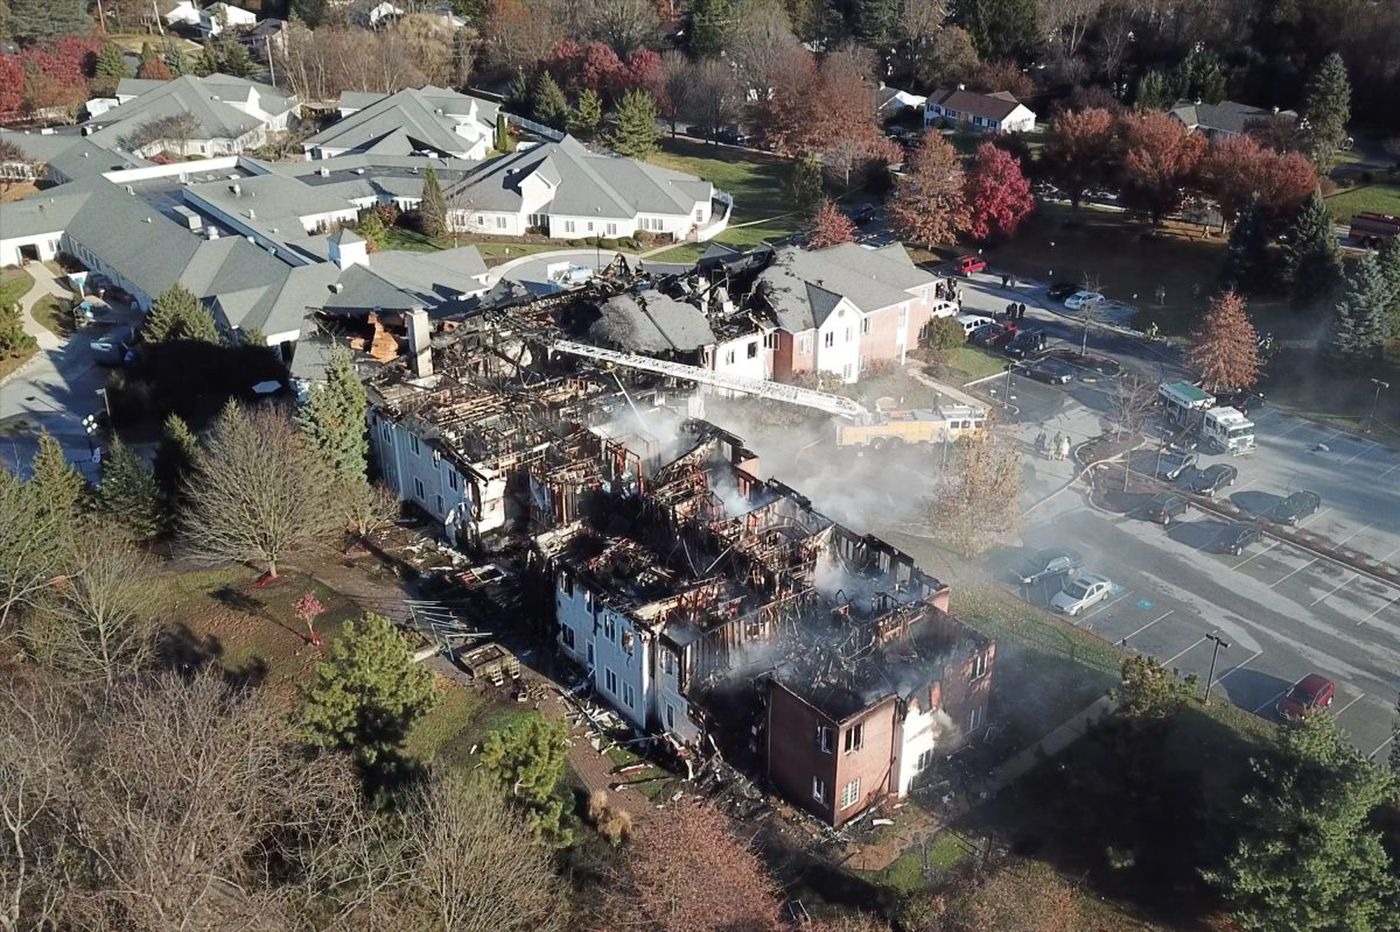 Officials: Residents missing in West Chester nursing home blaze